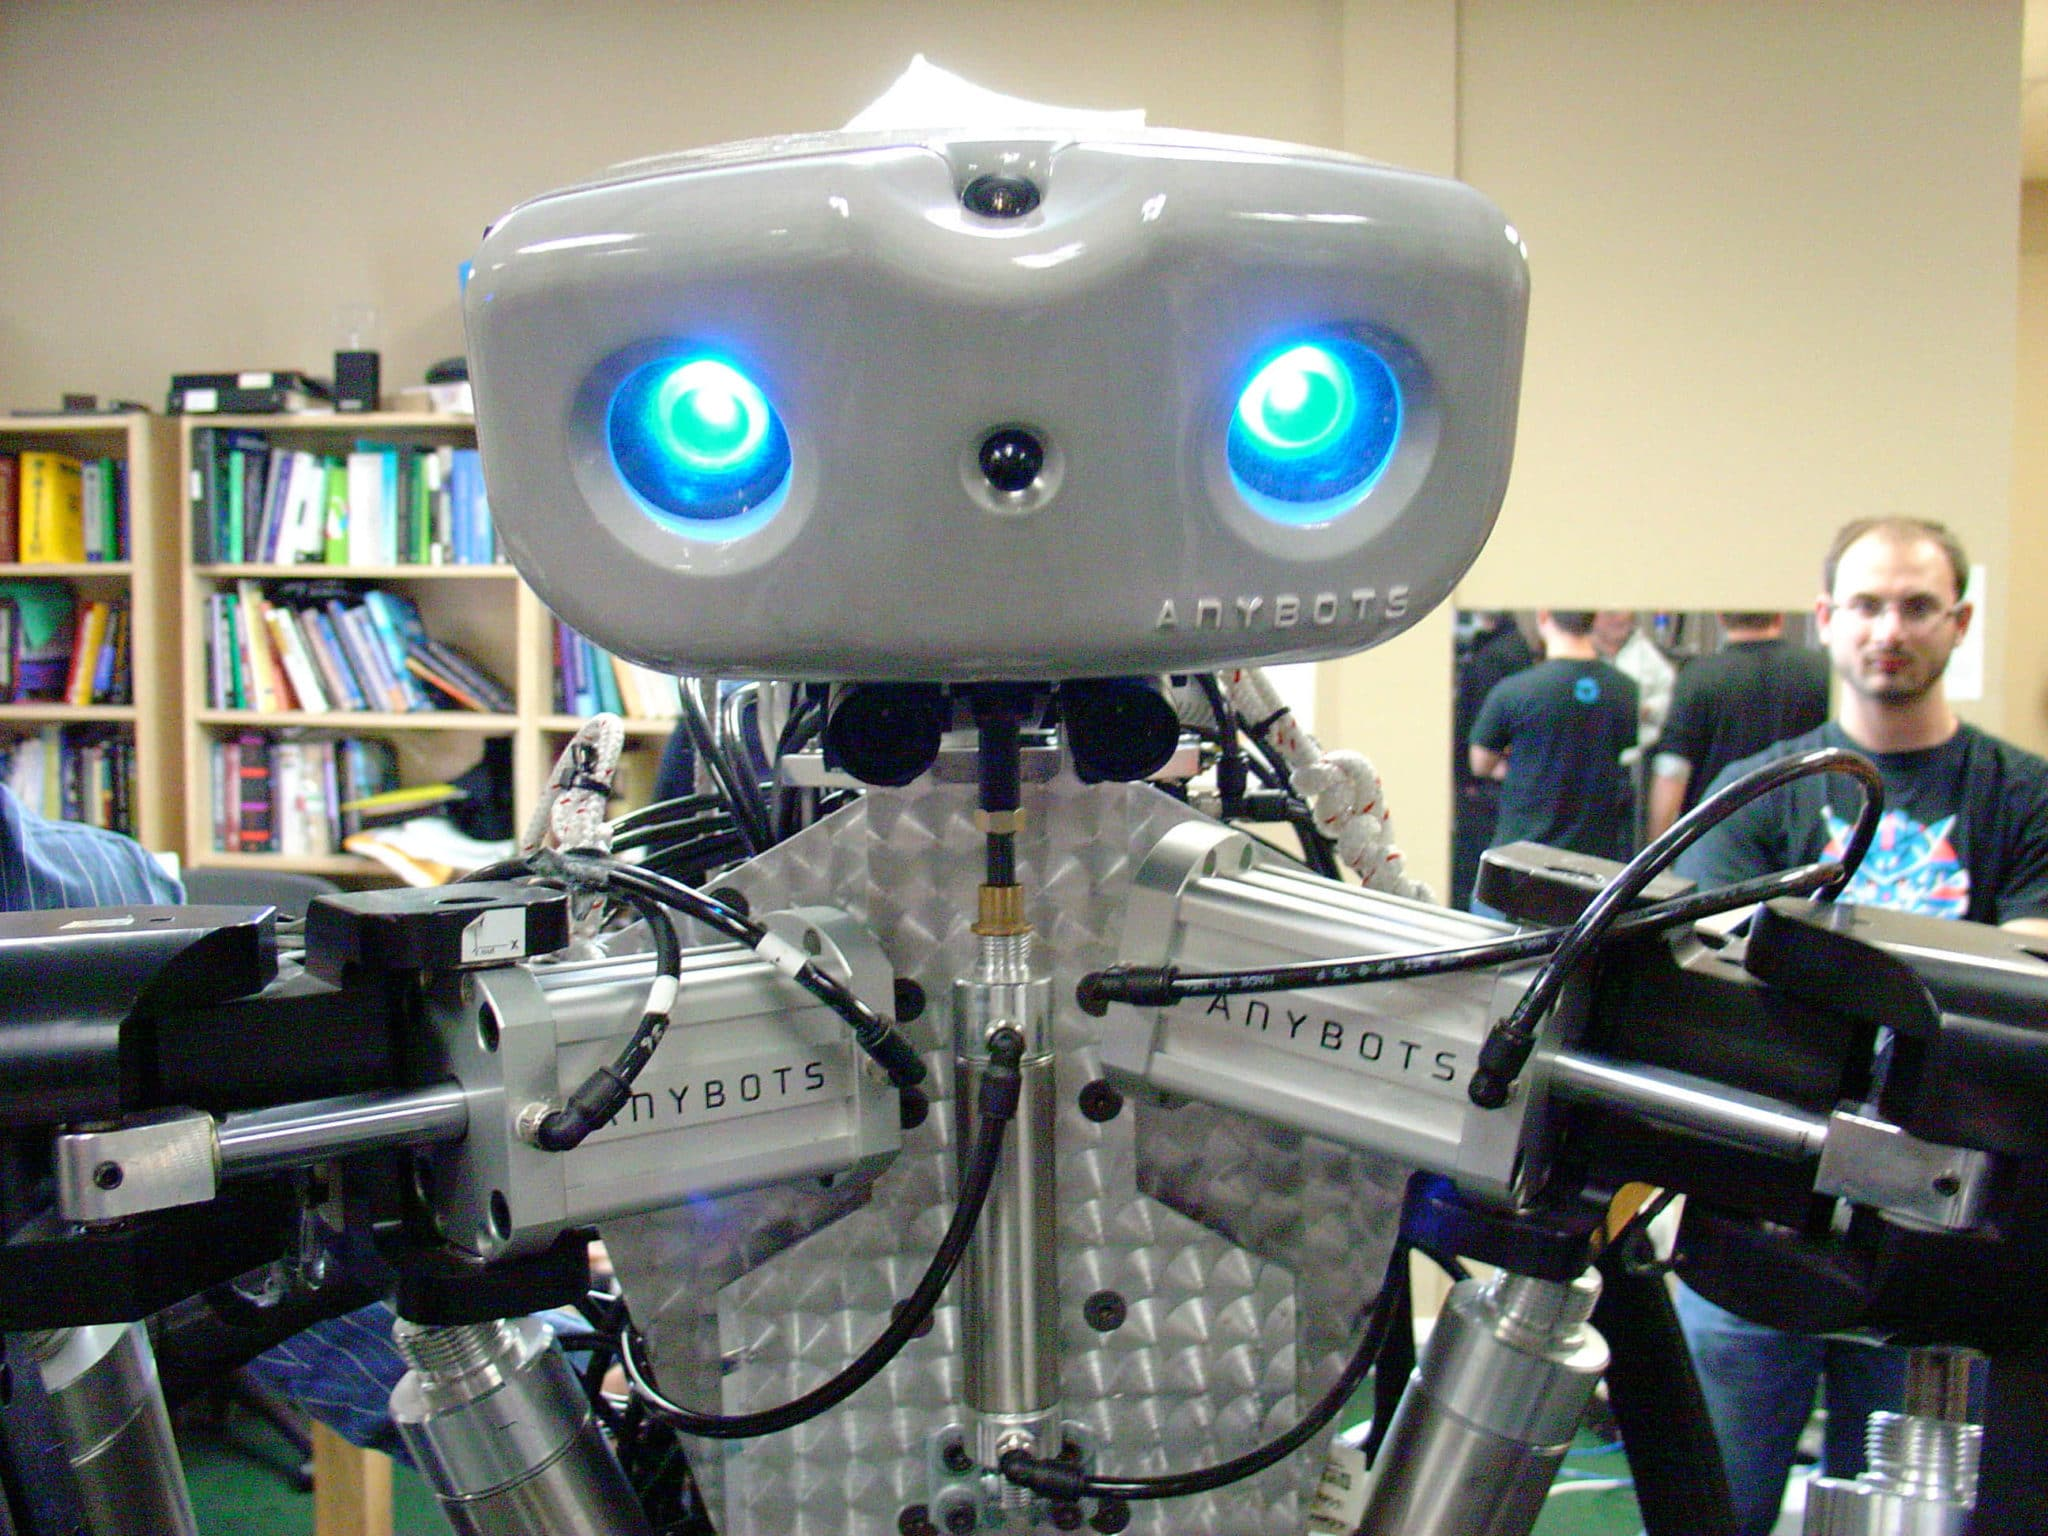 Future Trends: Unbiased Robot Bosses and Holoportation